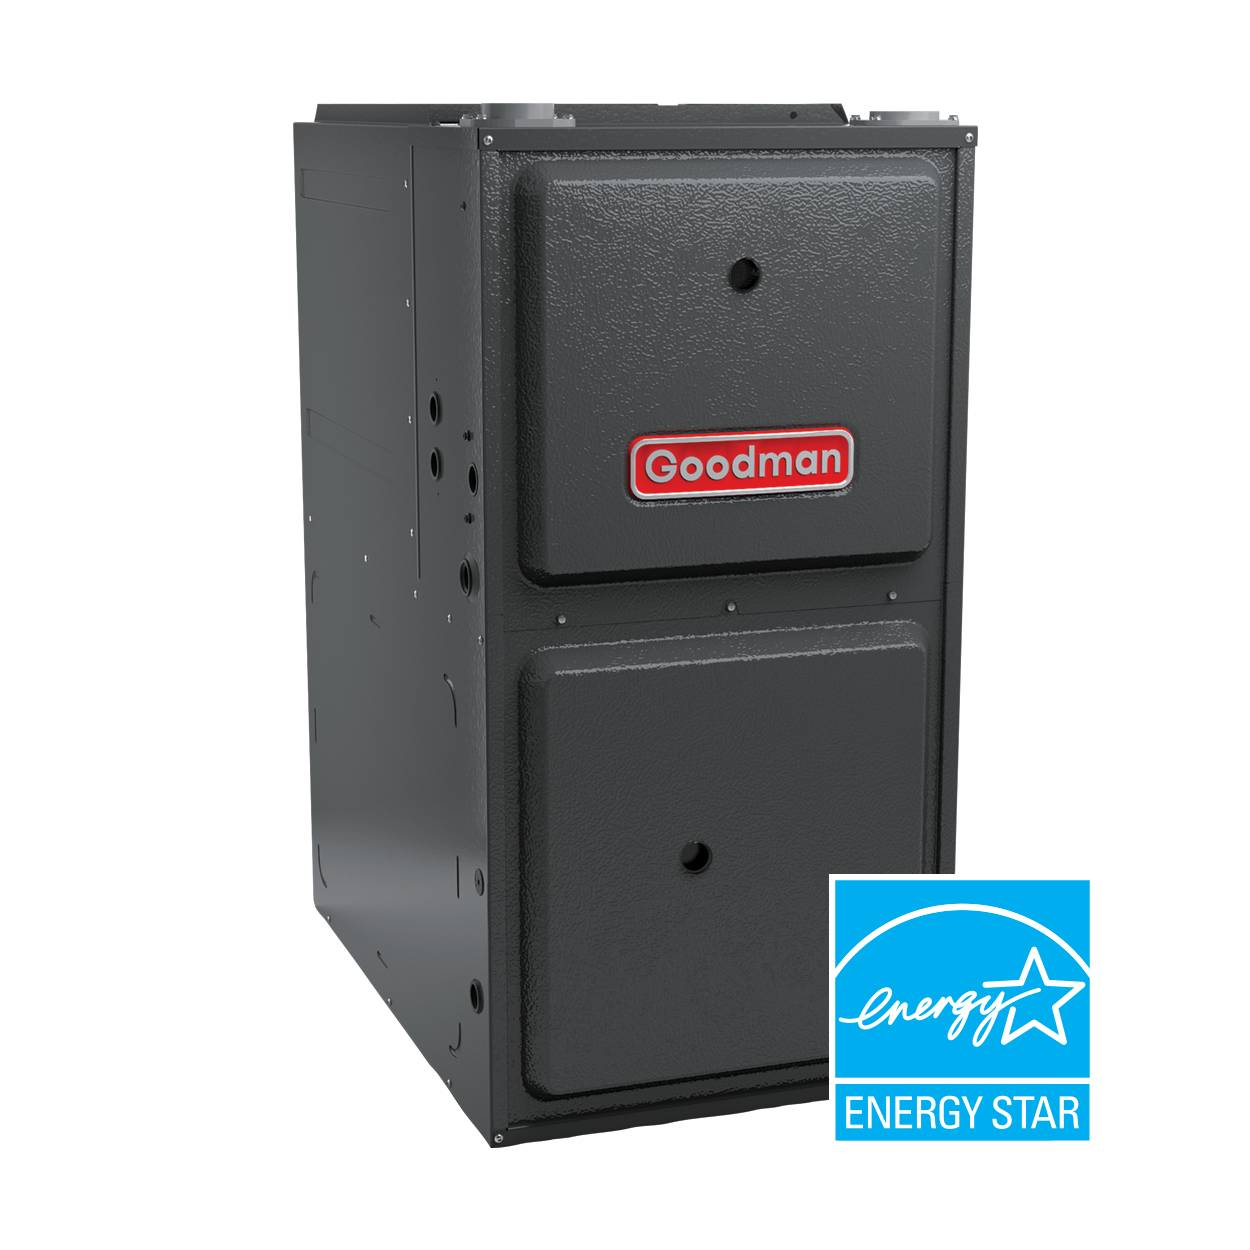 Goodman Gas Furnace - Energy Star